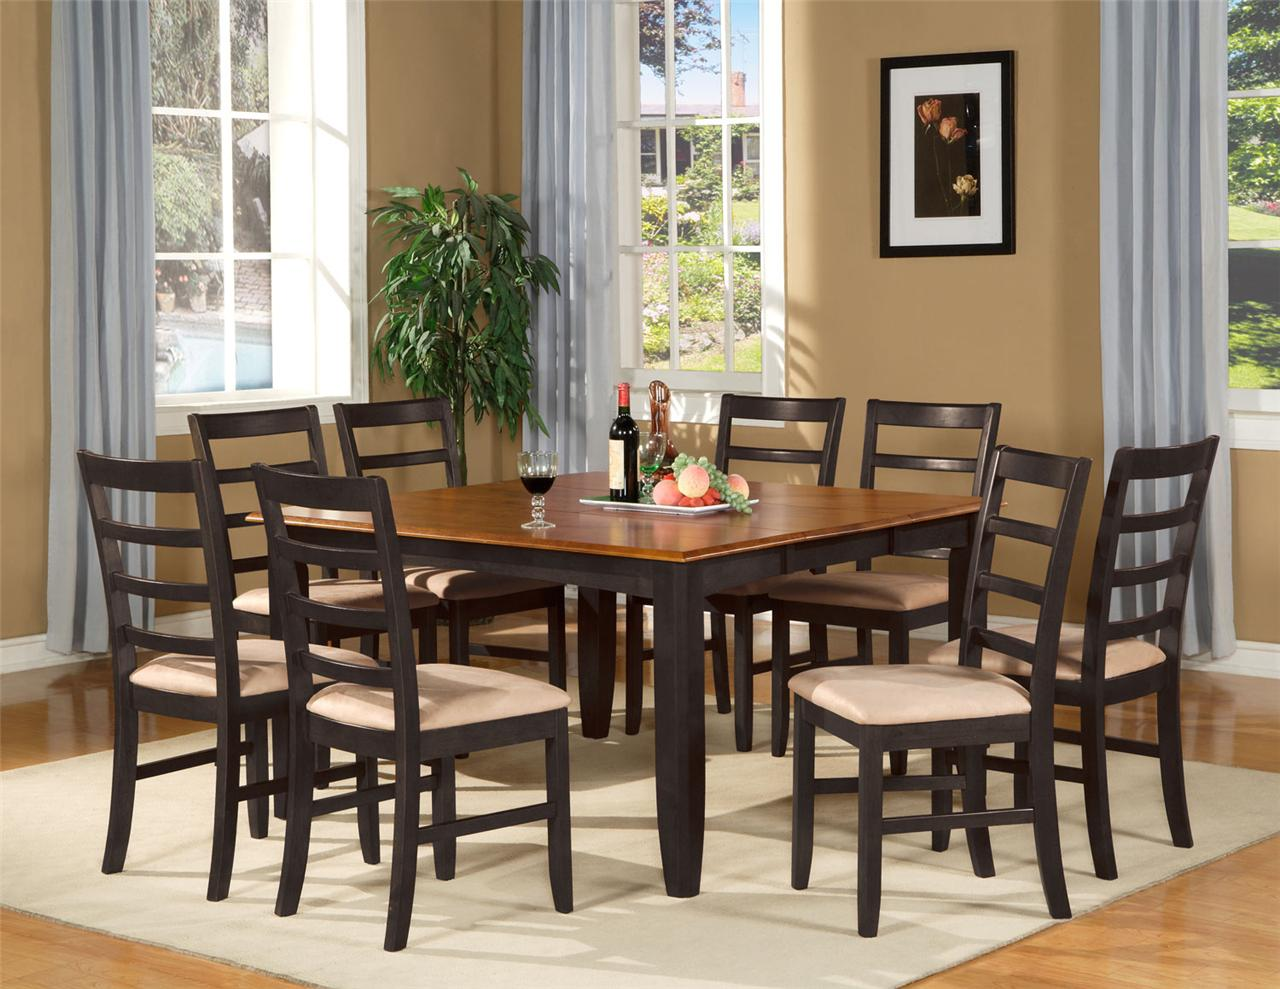 9 pc square dinette dining room table set and 8 chairs ebay Dining room table and chairs